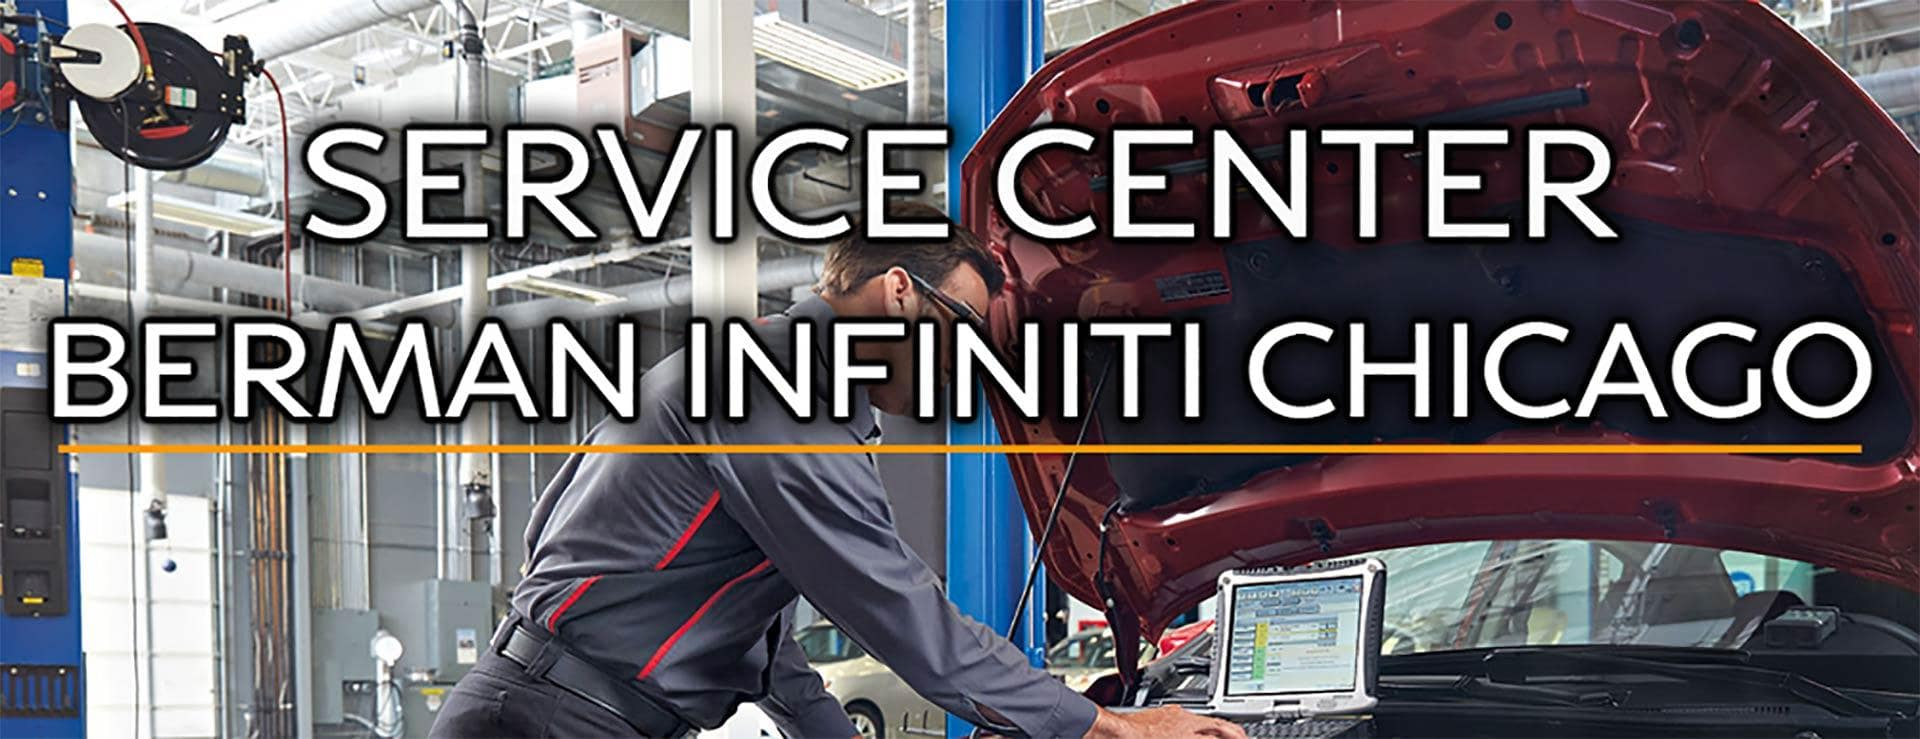 Berman INFINITI Chicago Service Center